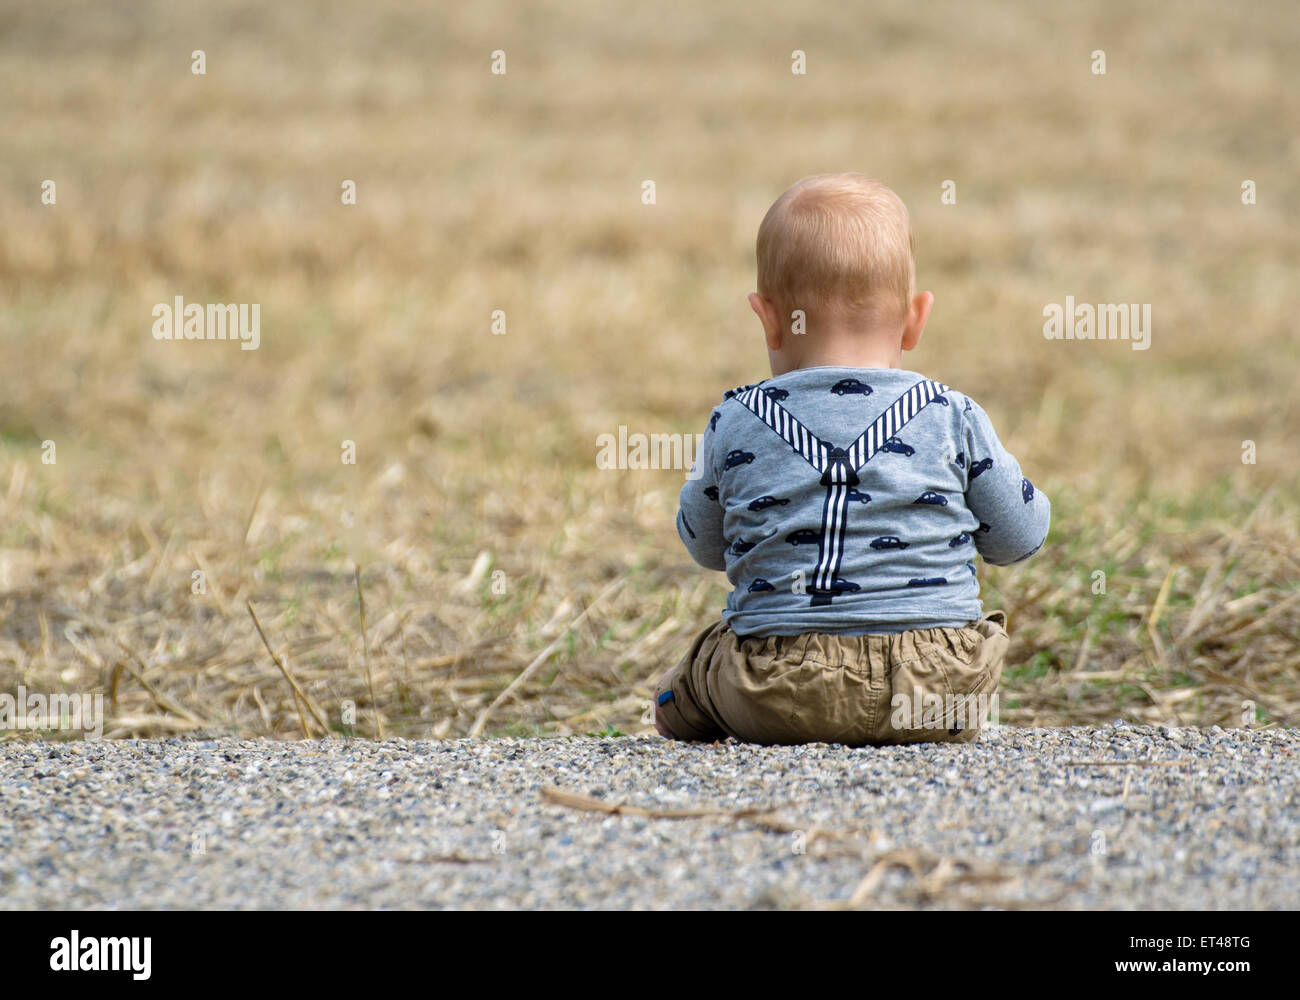 Baby sitting alone images — 2